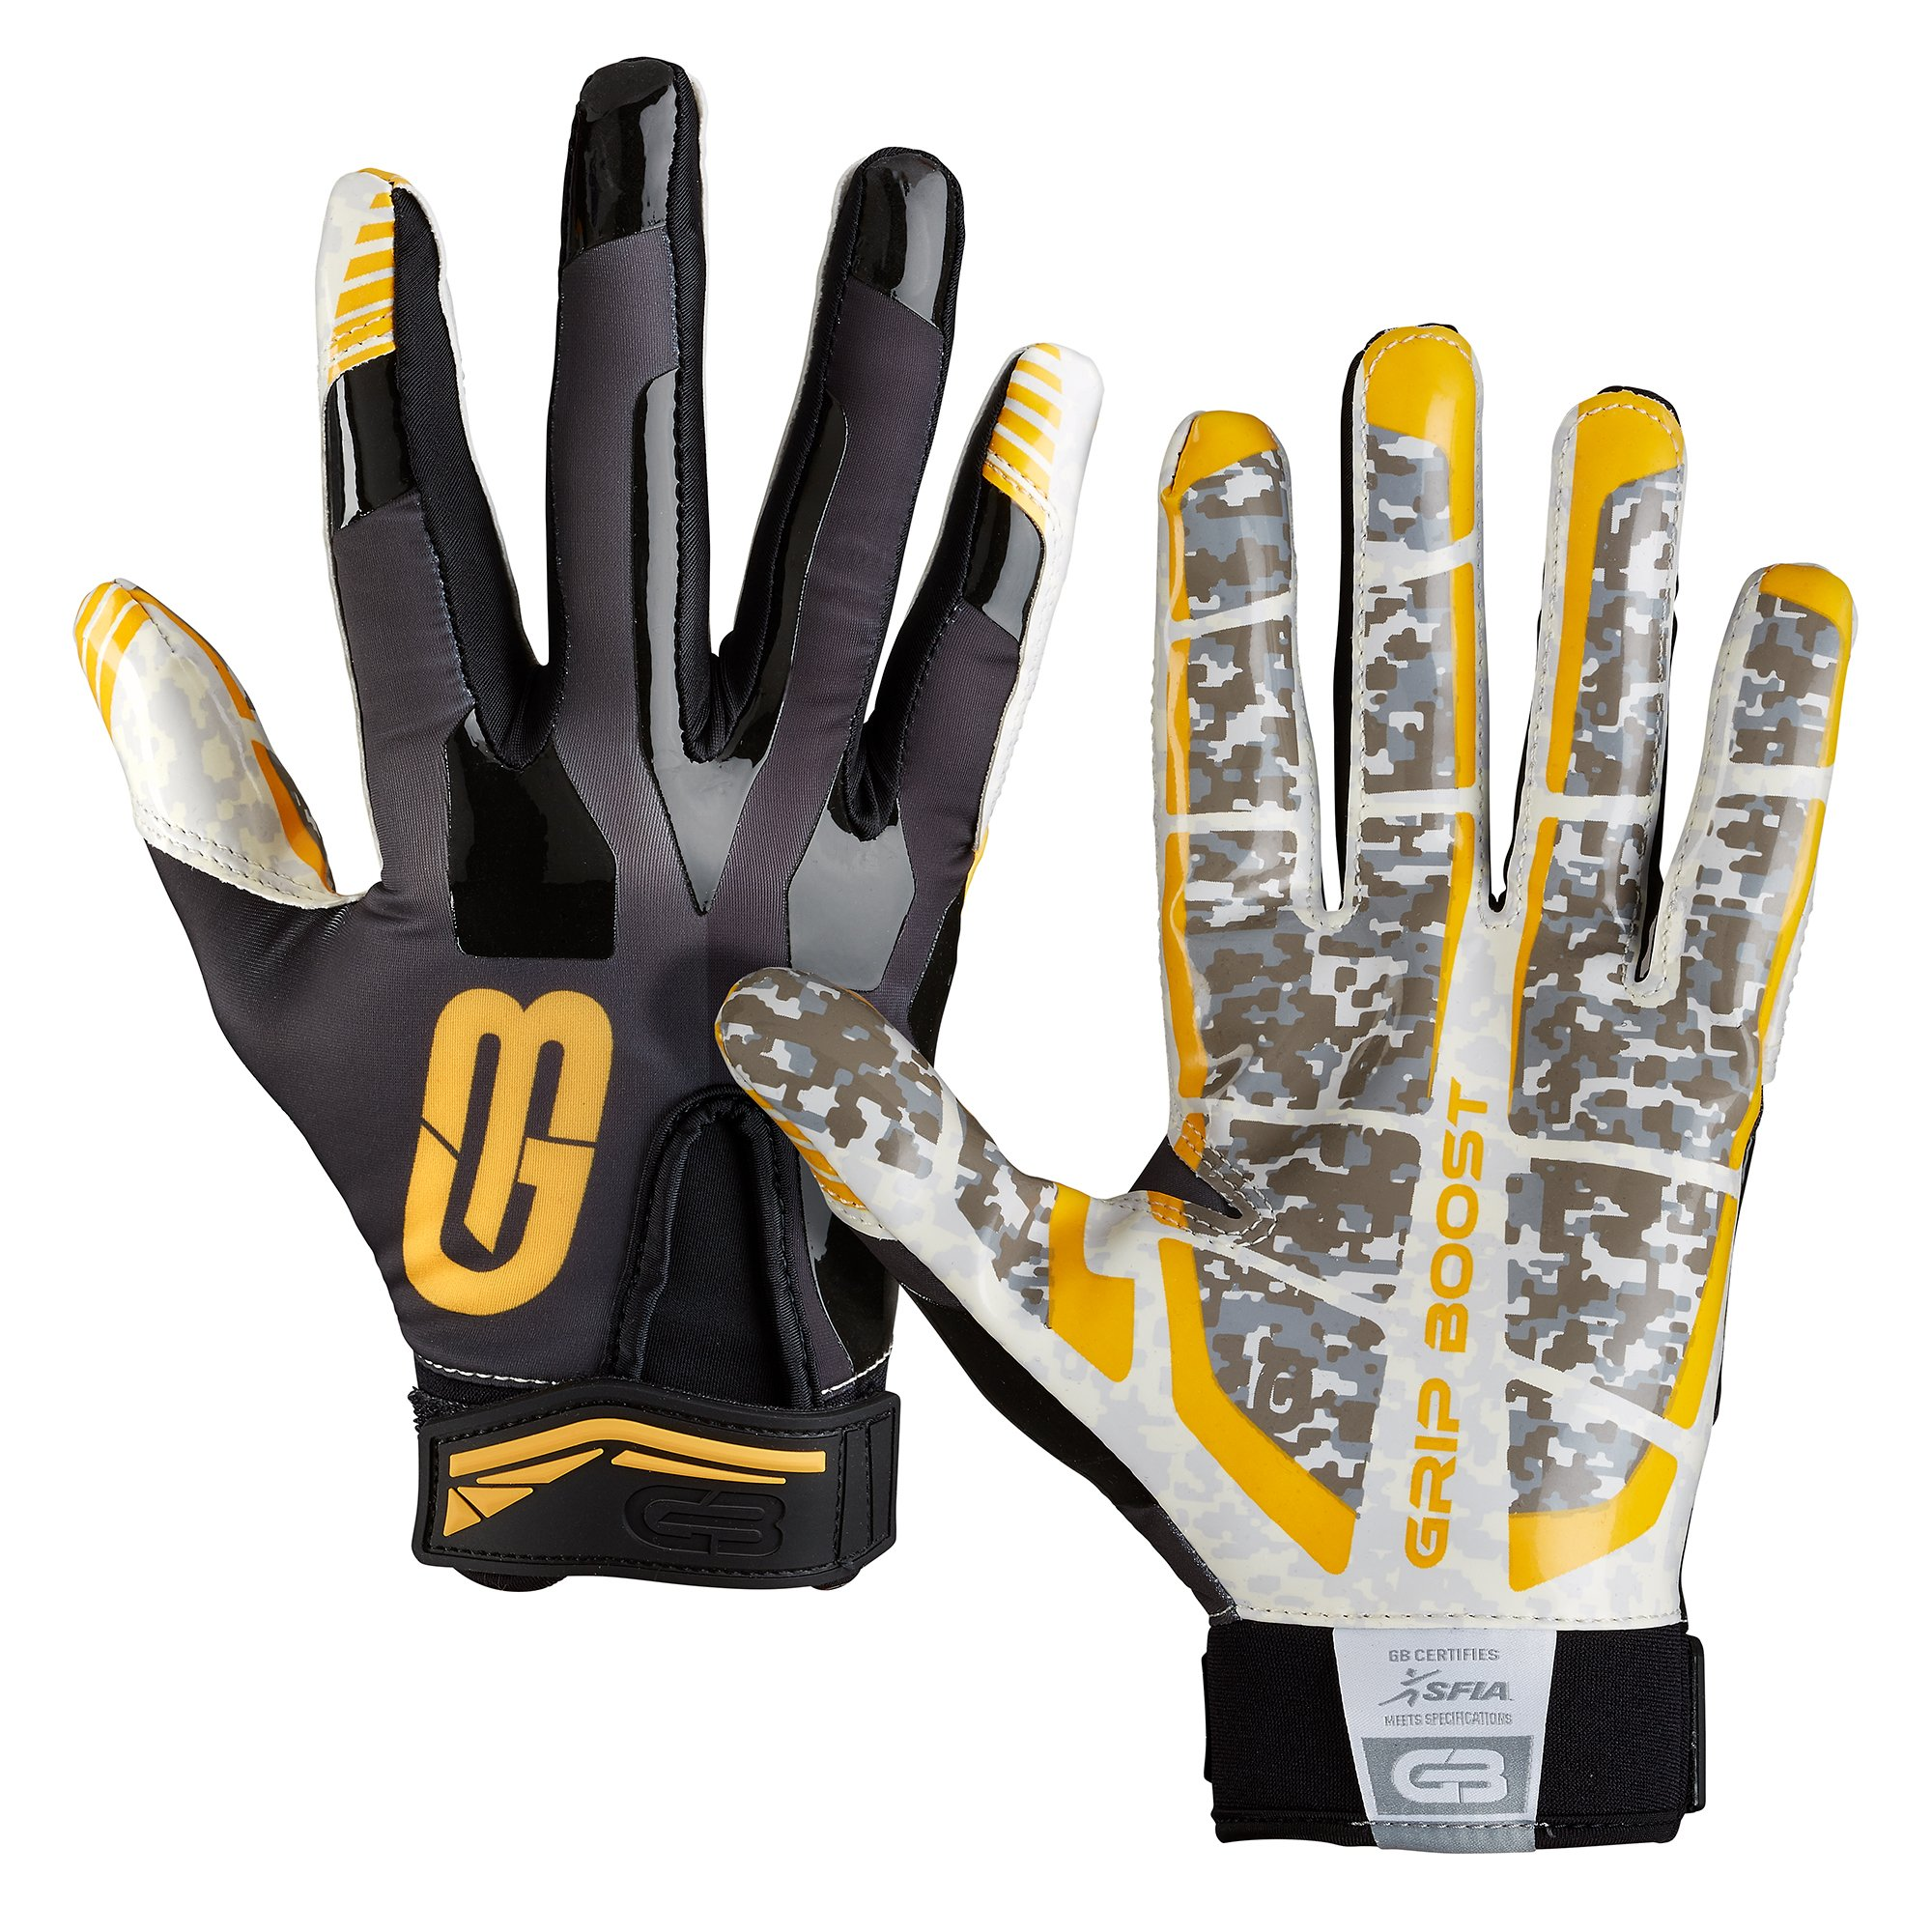 Grip Boost Stealth Super Sticky Football Gloves Pro Elite, Youth & Adult Men Sizes (Black/Gold, Youth Small)